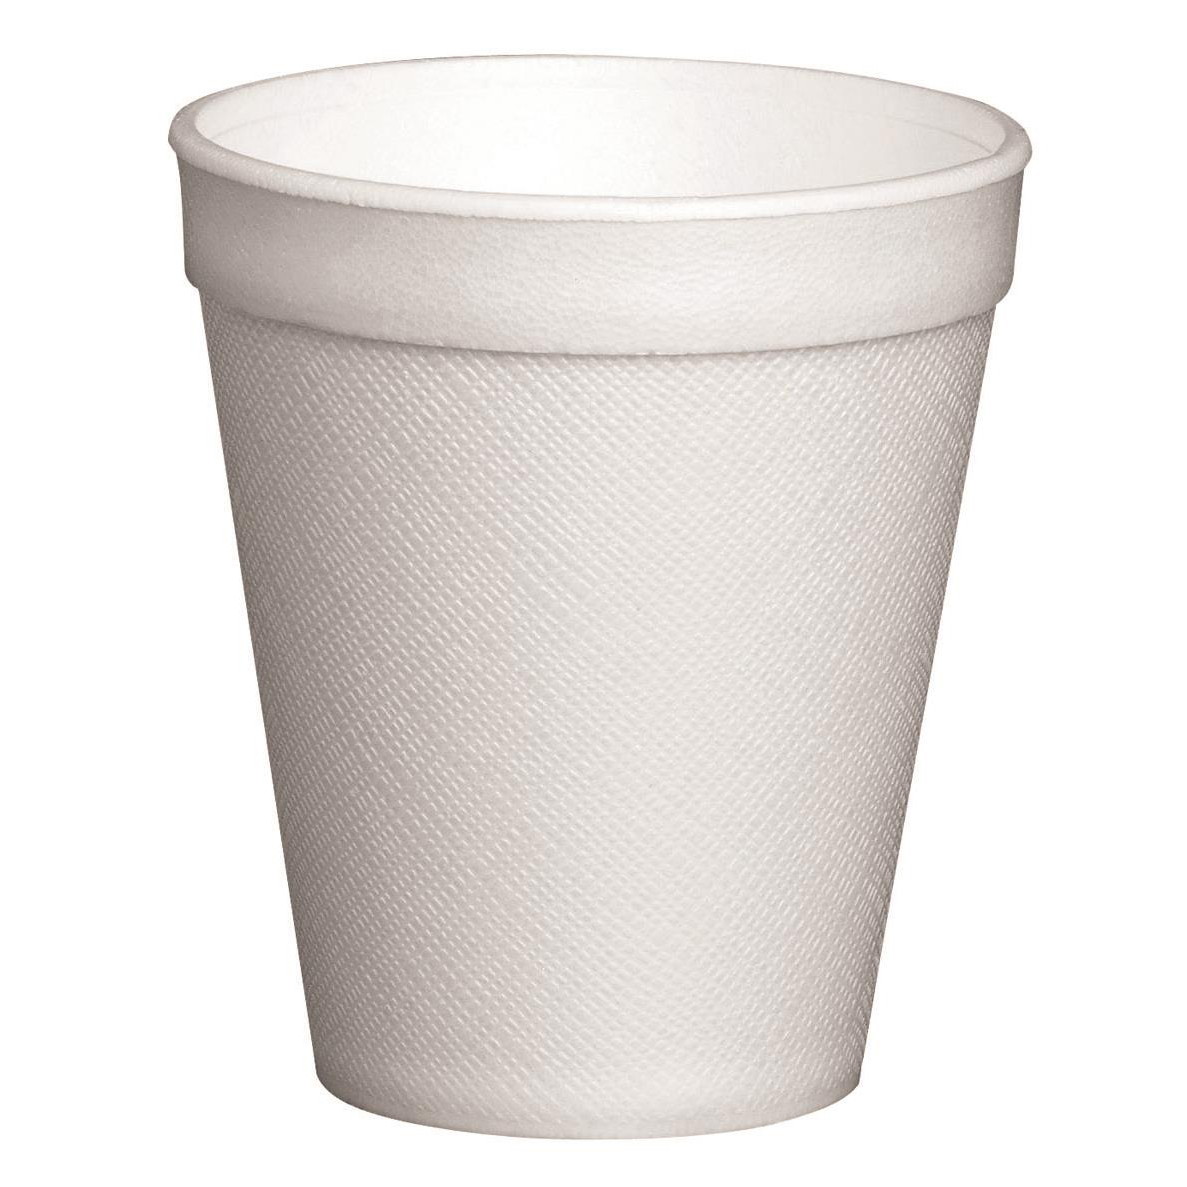 Cup Insulated Foam 10oz 296ml White Ref 10LX10 Pack 20